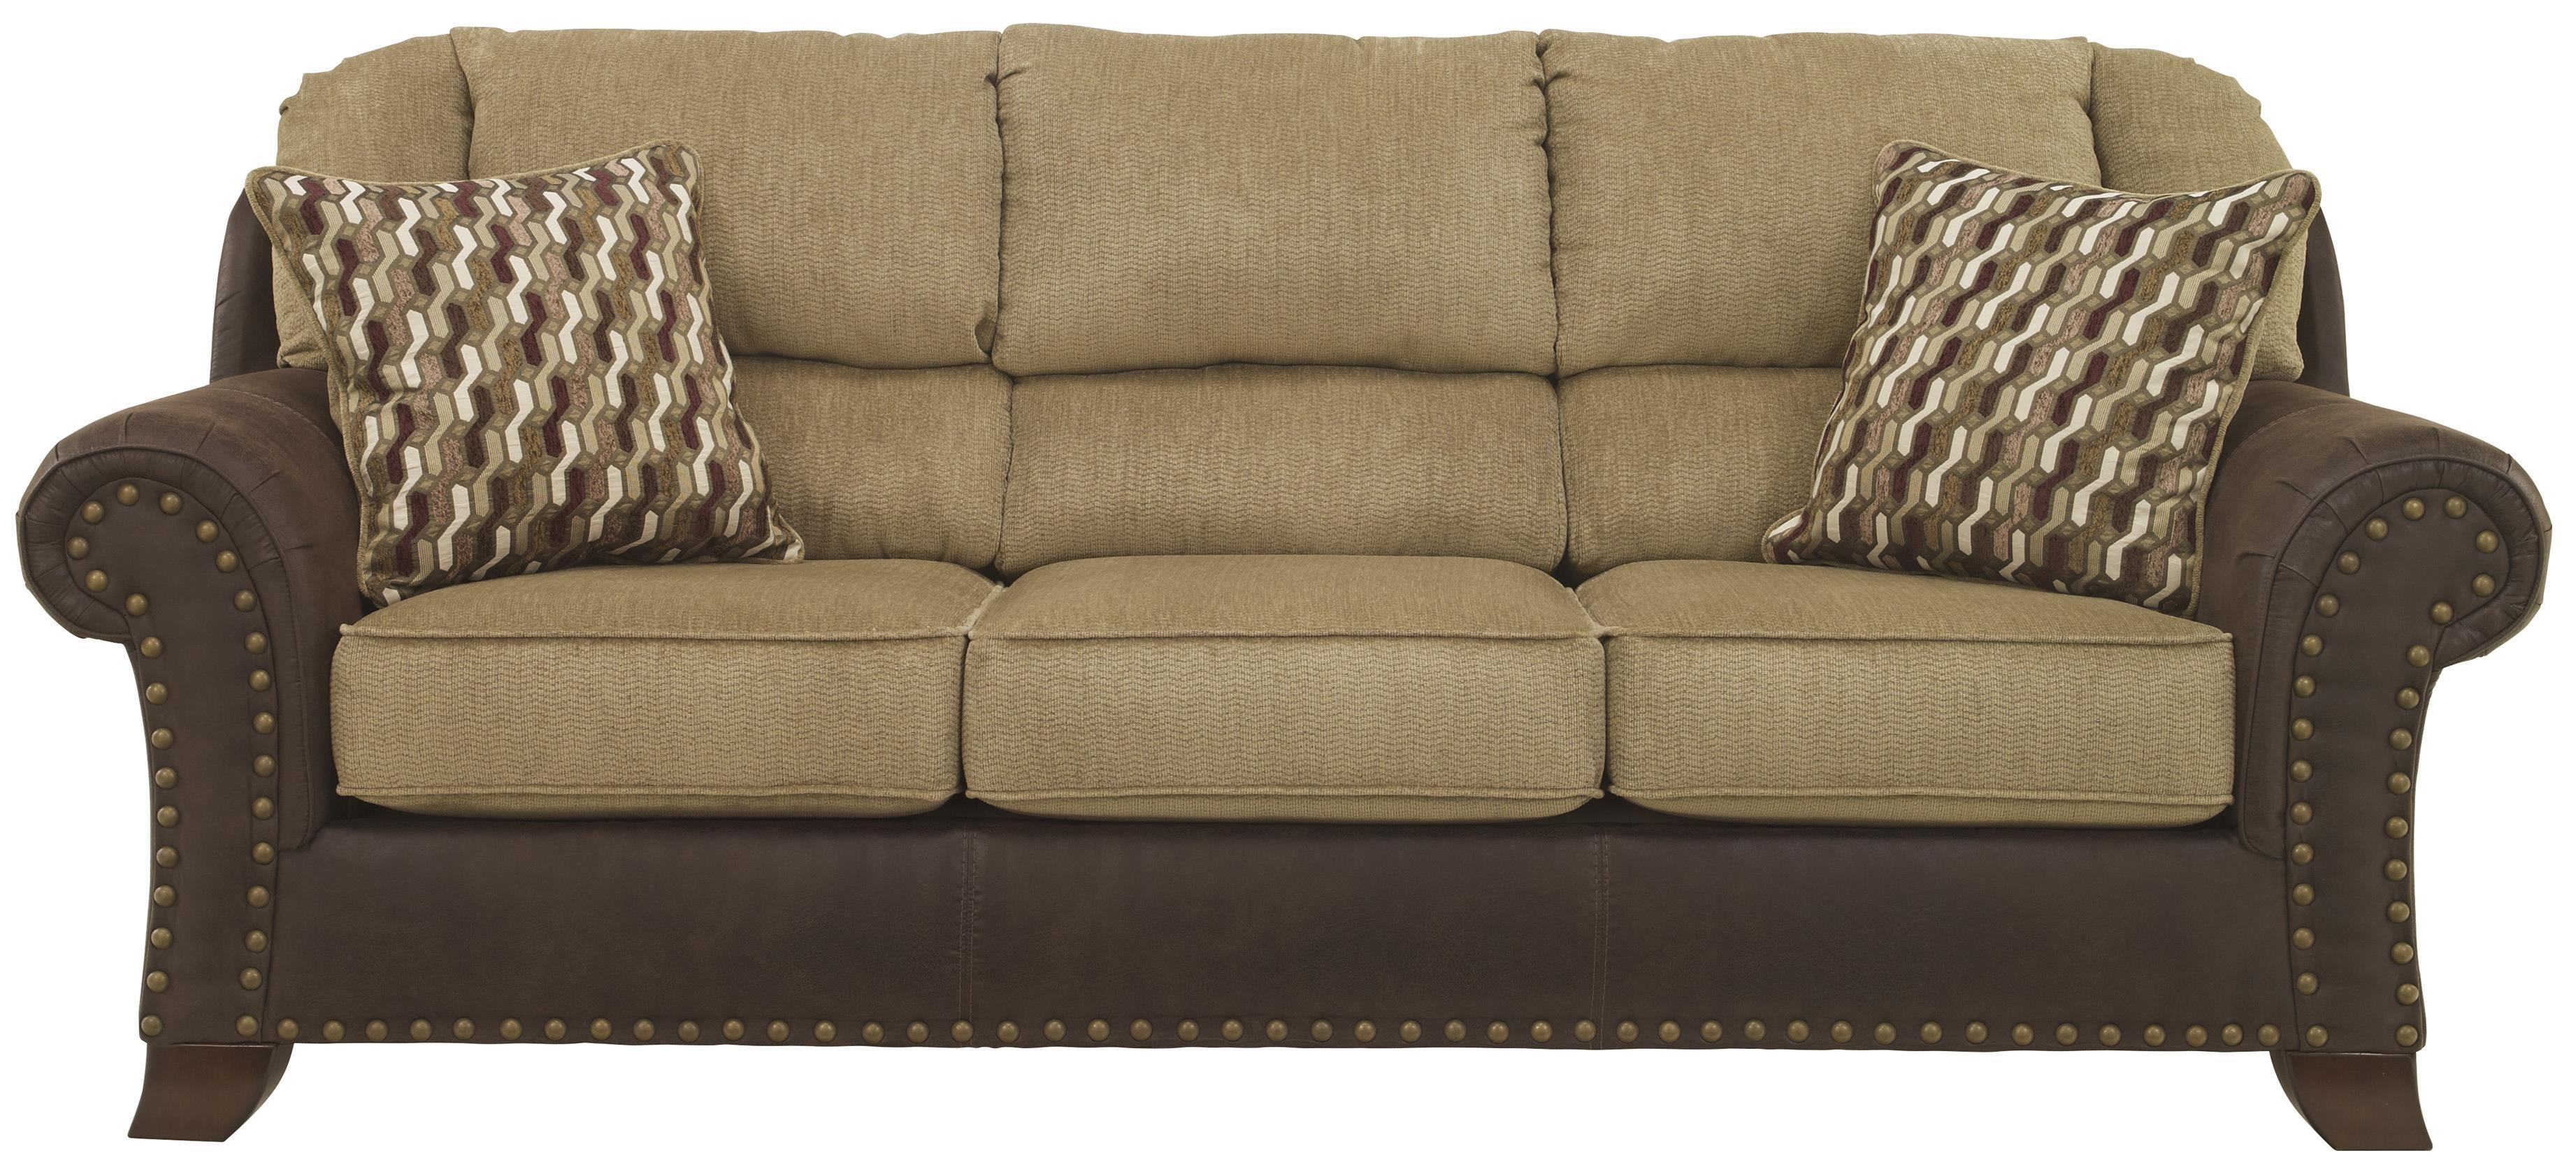 Benchcraft Vandive Two Tone Sofa With Chenille Fabric/faux Leather Regarding Two Tone Sofas (Image 4 of 20)